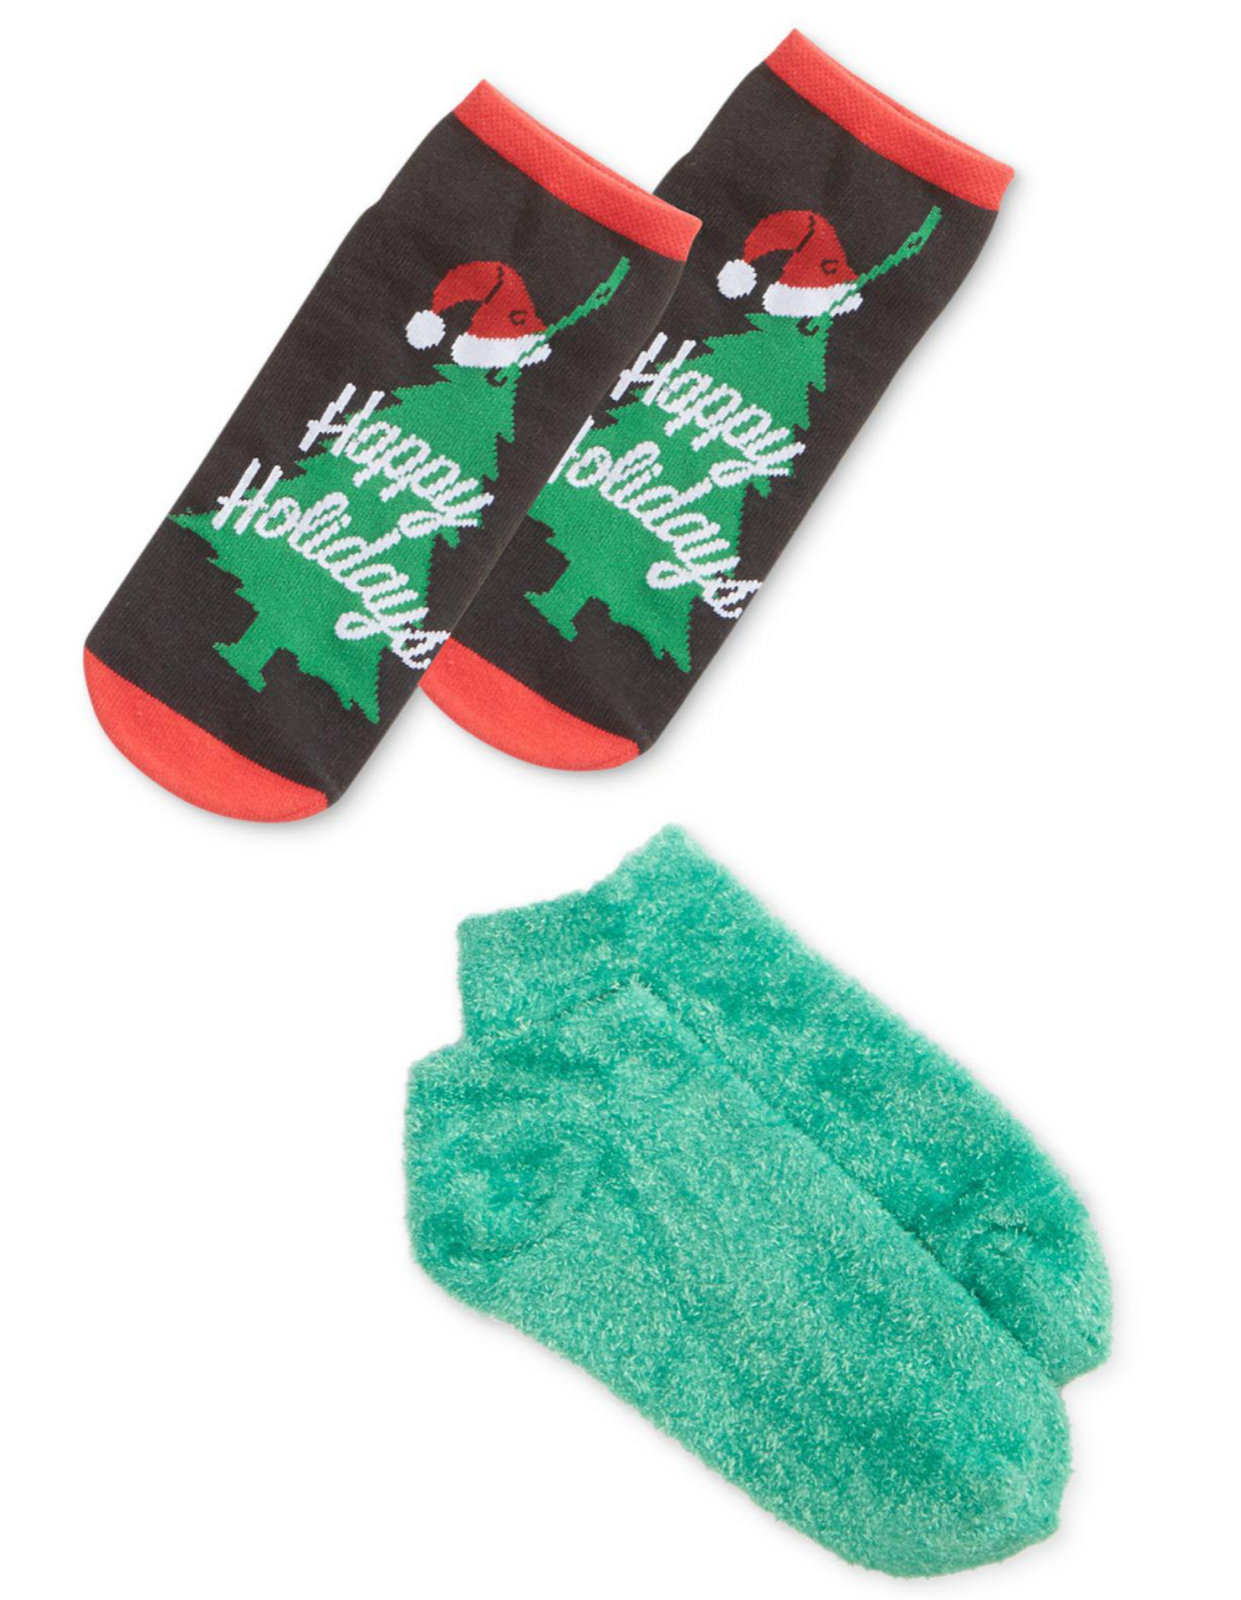 HUE 2-pack Footsie Socks Gift Box Happy Holidays